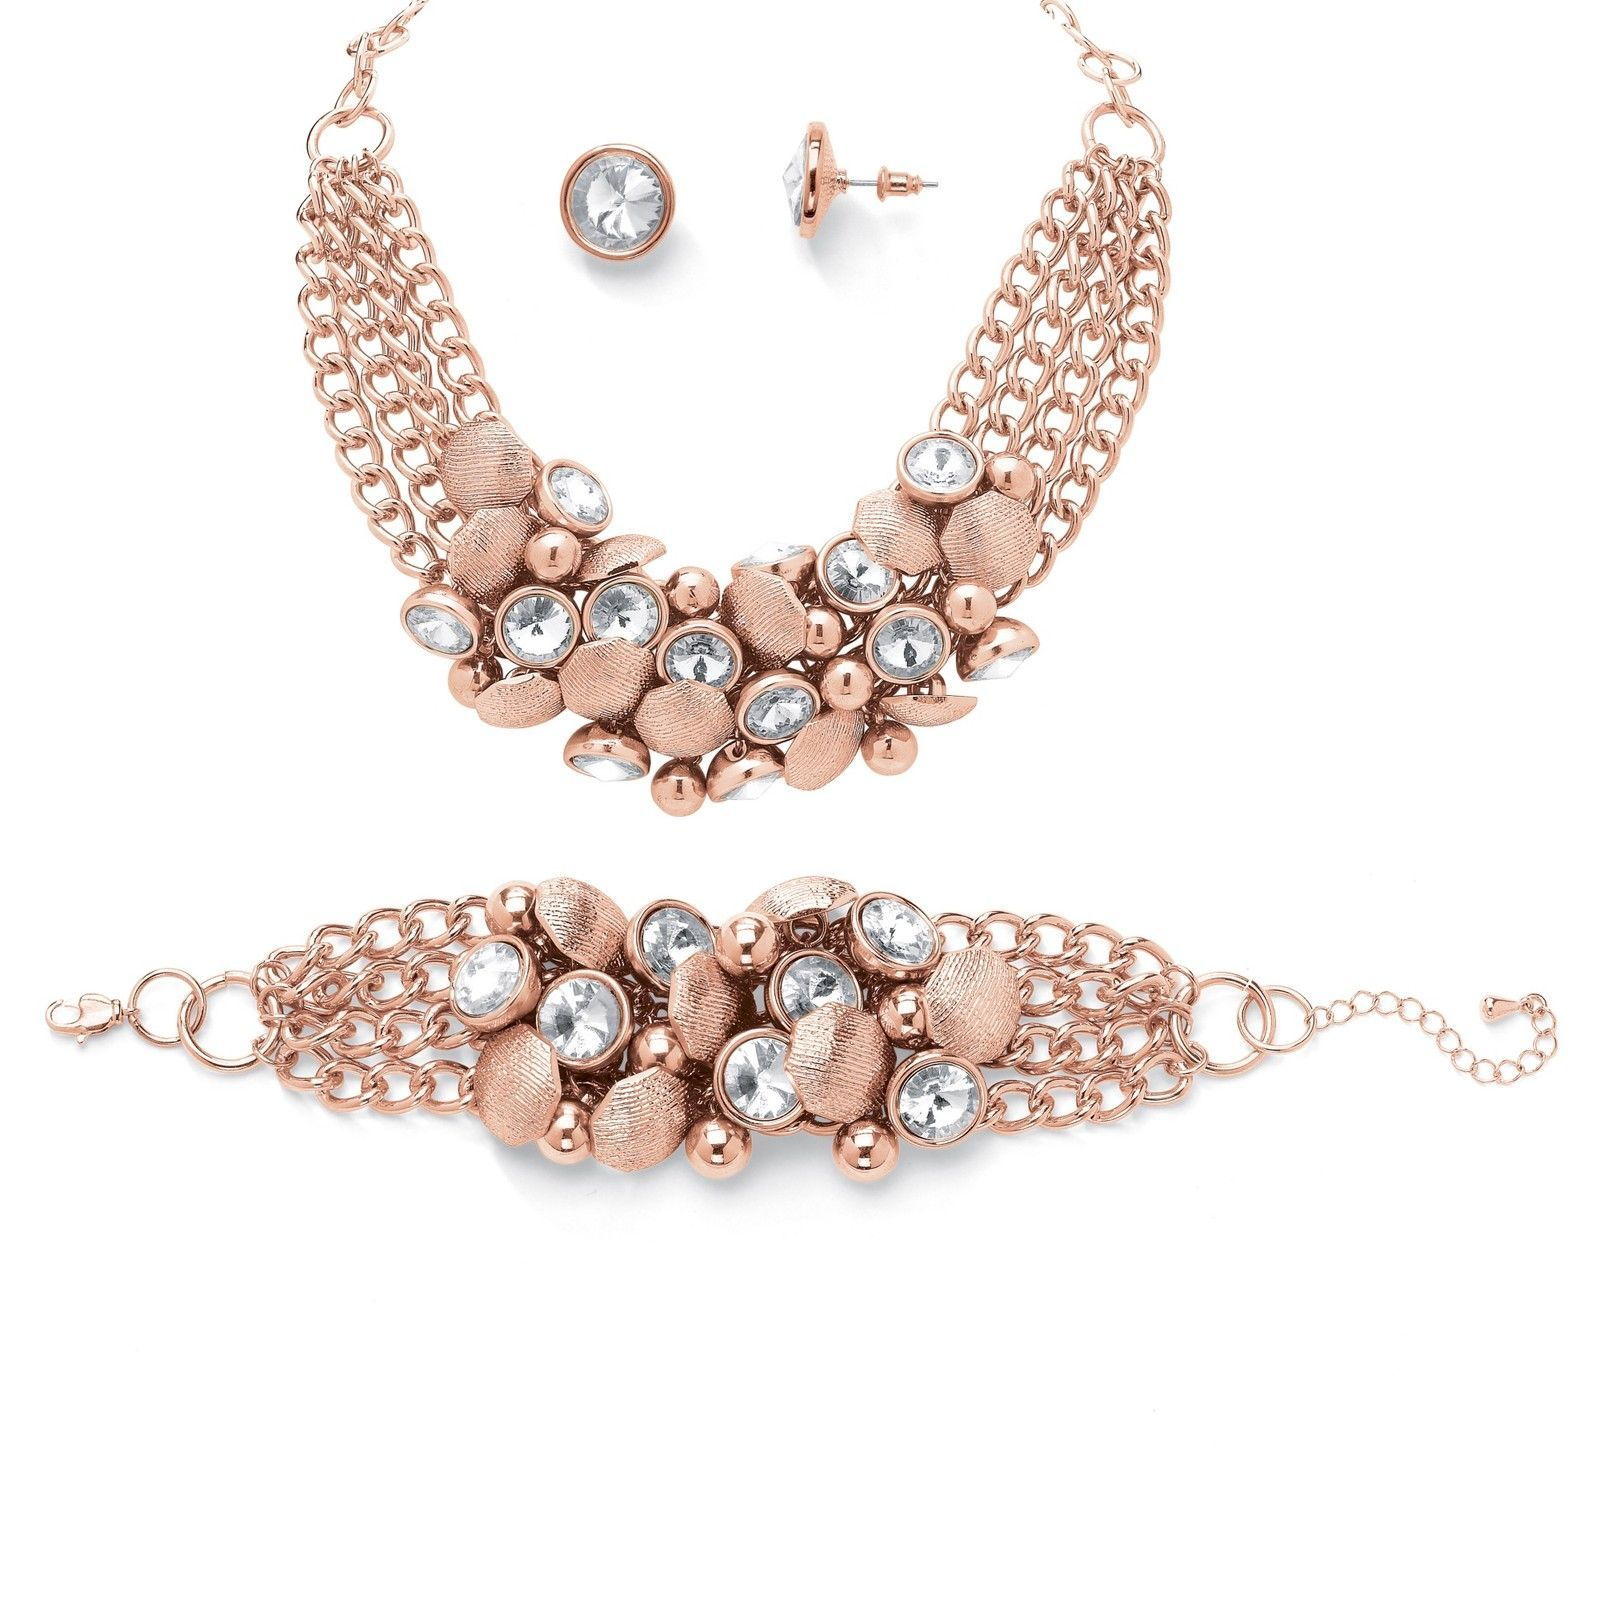 Palmbeach jewelry crystal necklace bracelet and earrings set rose